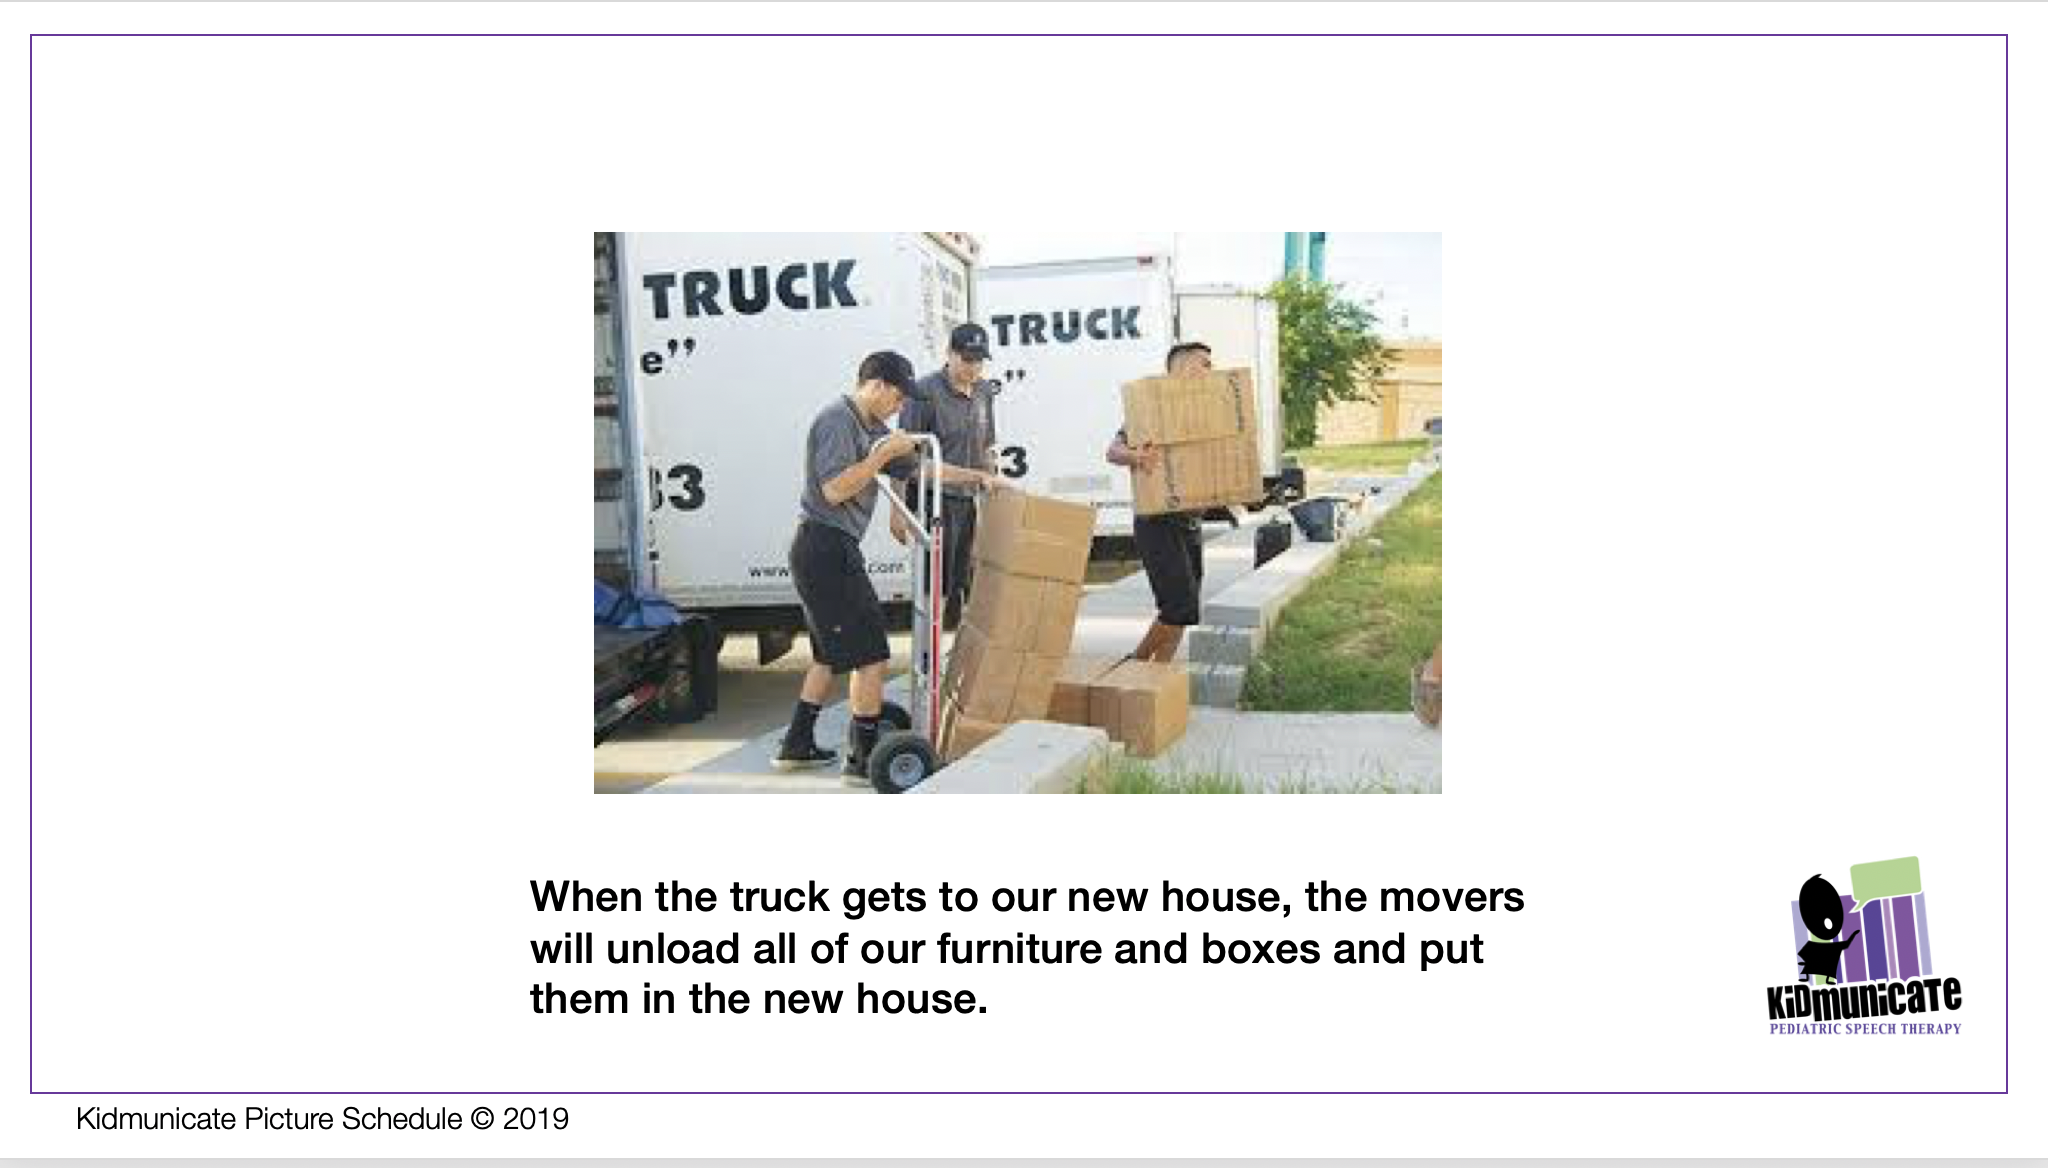 Autism social story about moving